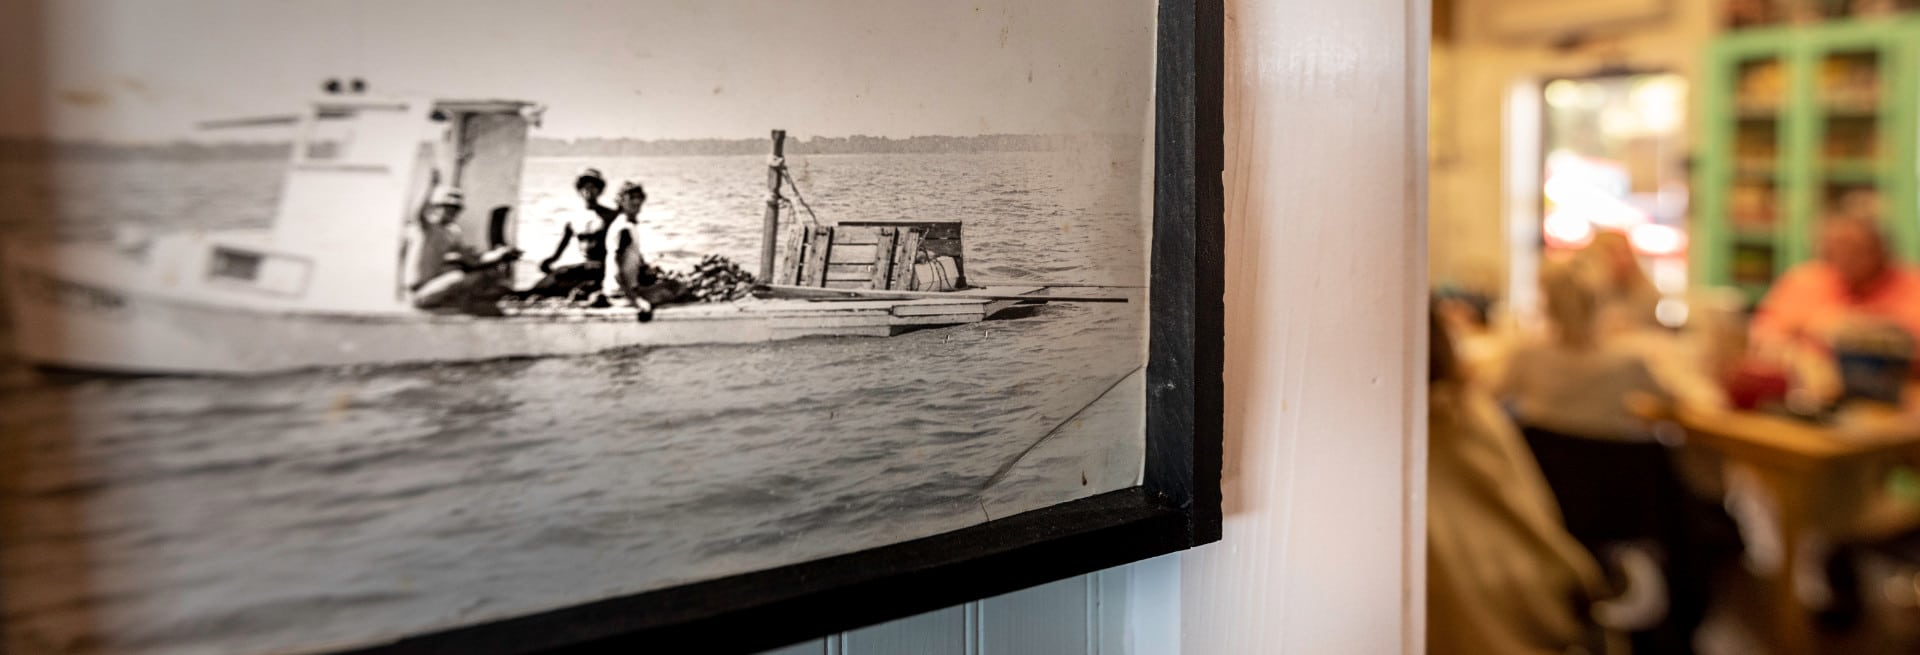 Picture on the wall of Lynn's - Boys in a Boat